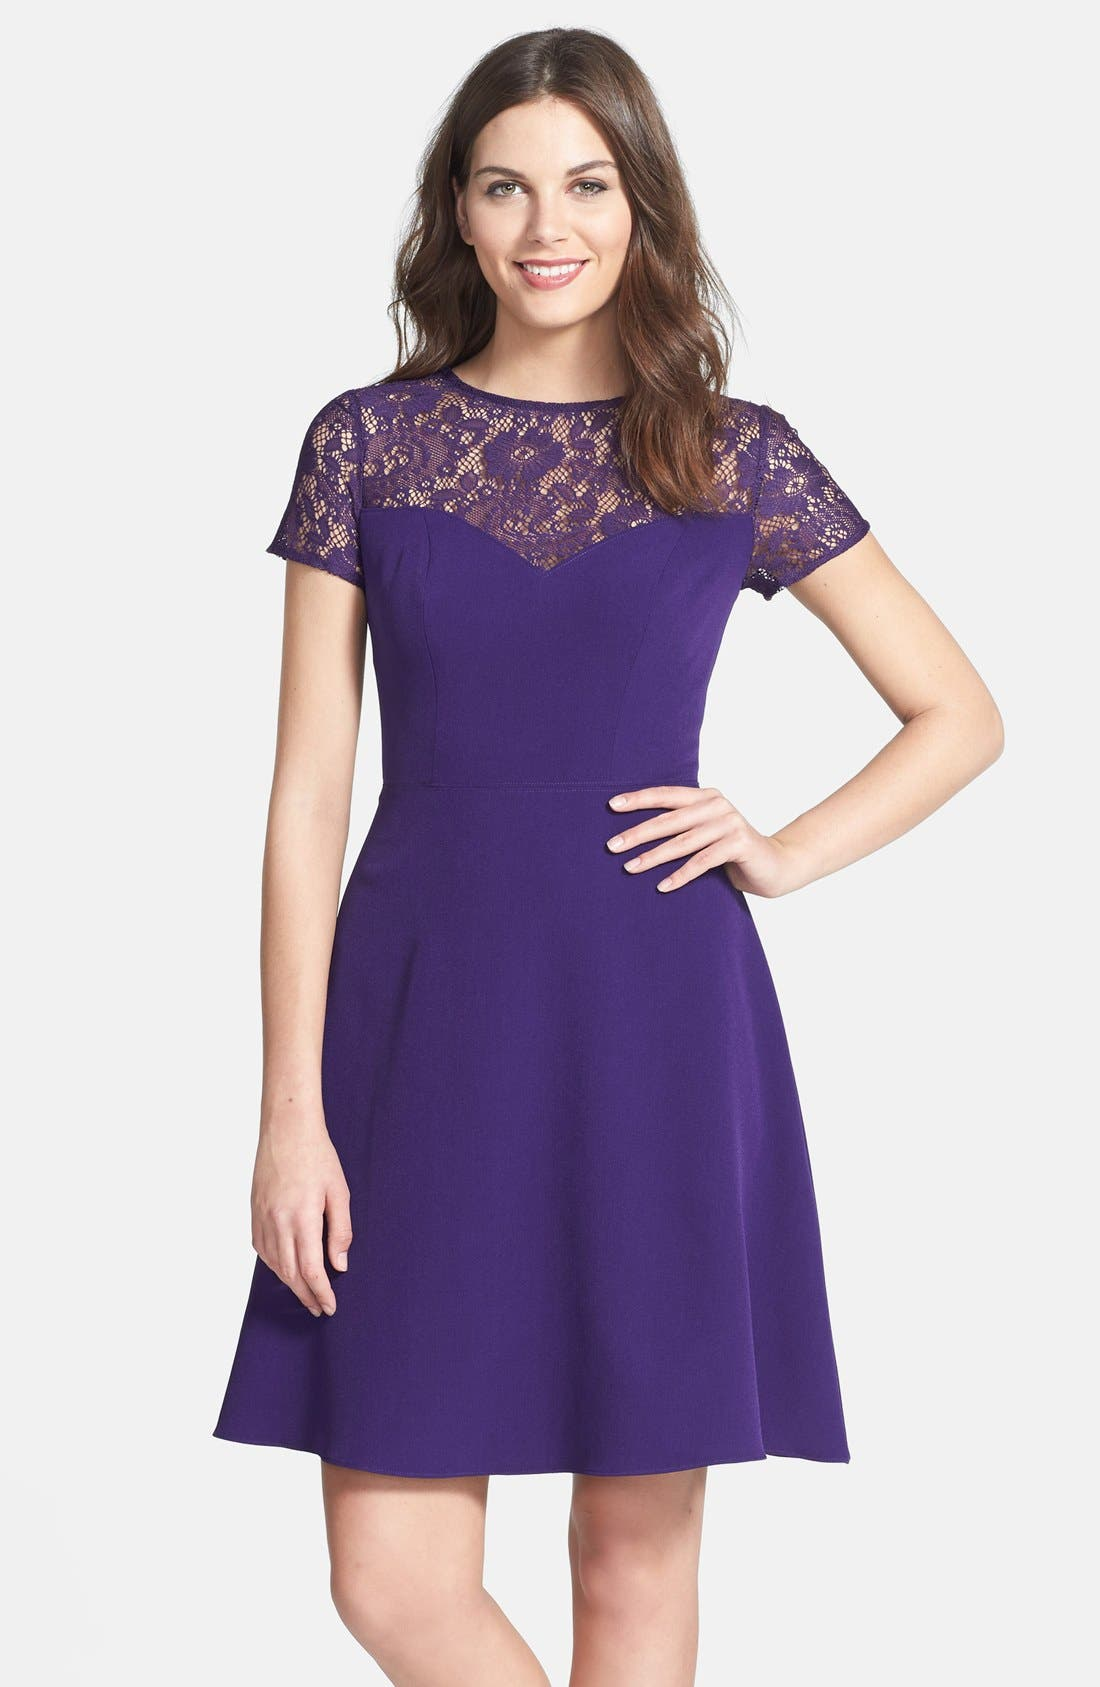 Alternate Image 1 Selected - Adrianna Papell Lace & Crepe Fit & Flare Dress